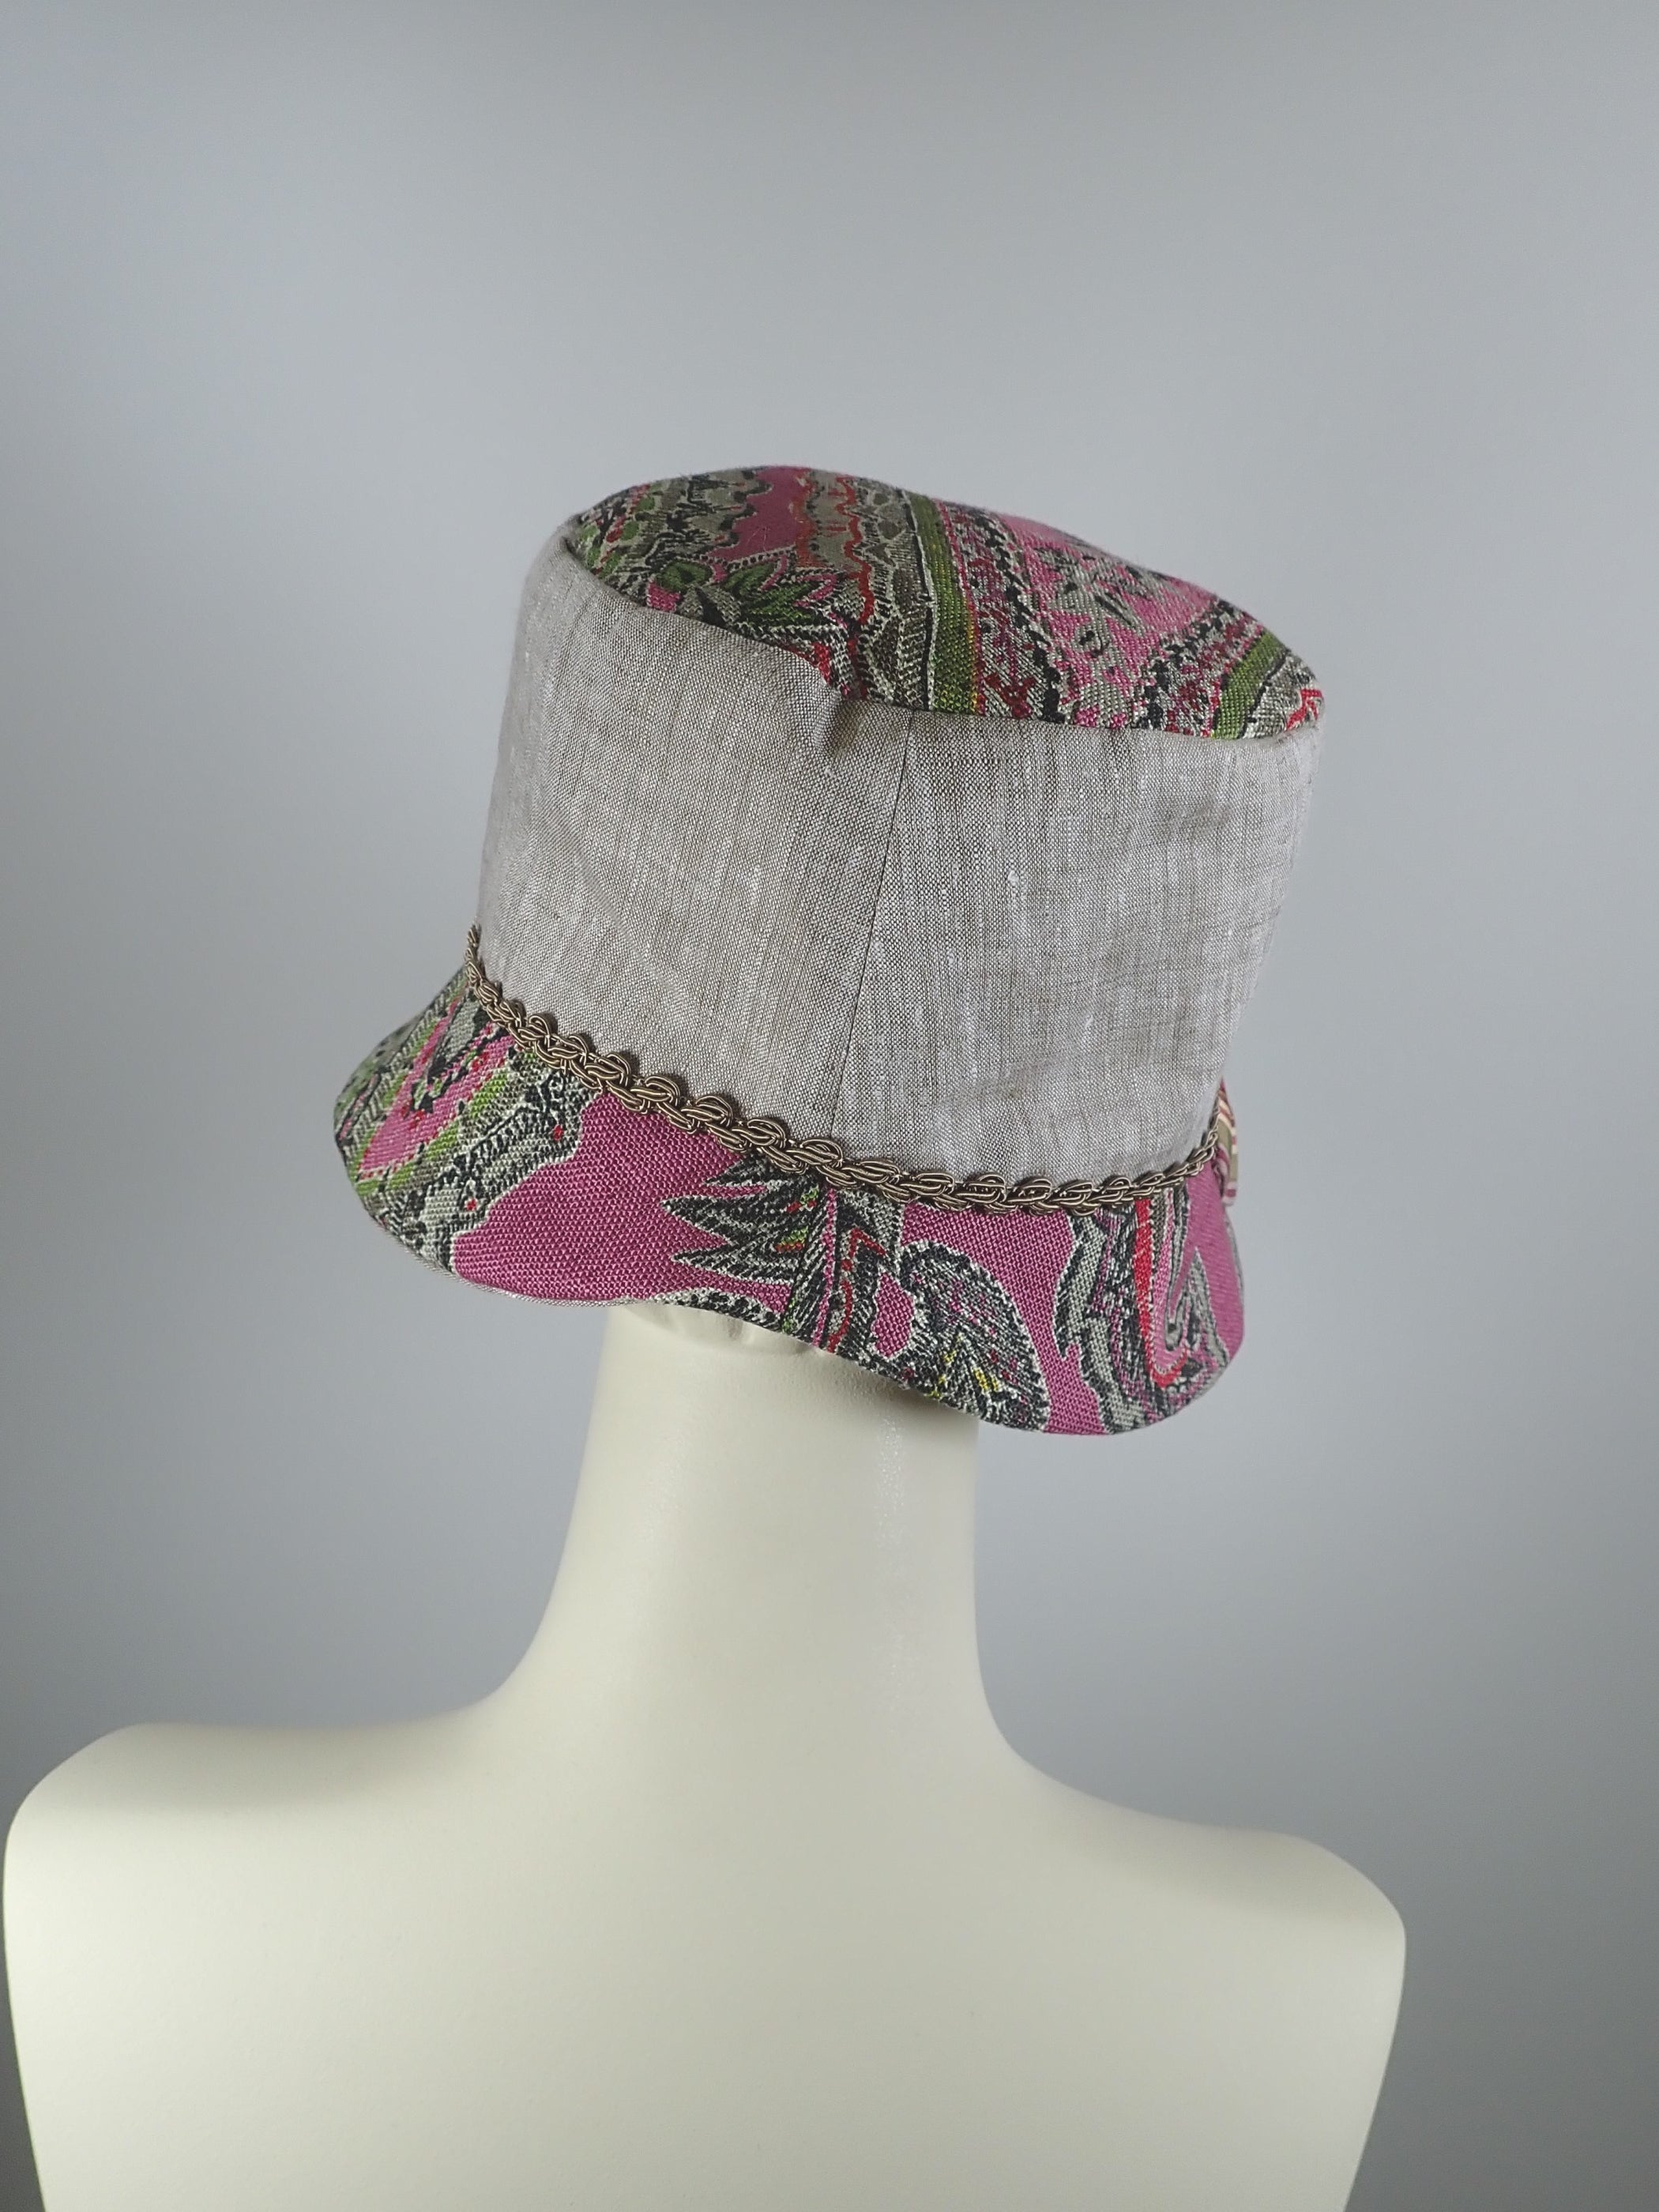 Pink Paisley and Natural Linen Summer Cloche Hat, Small Brim Summer Hat for Women, What a Great Hat, Ladies Summer Travel Hat